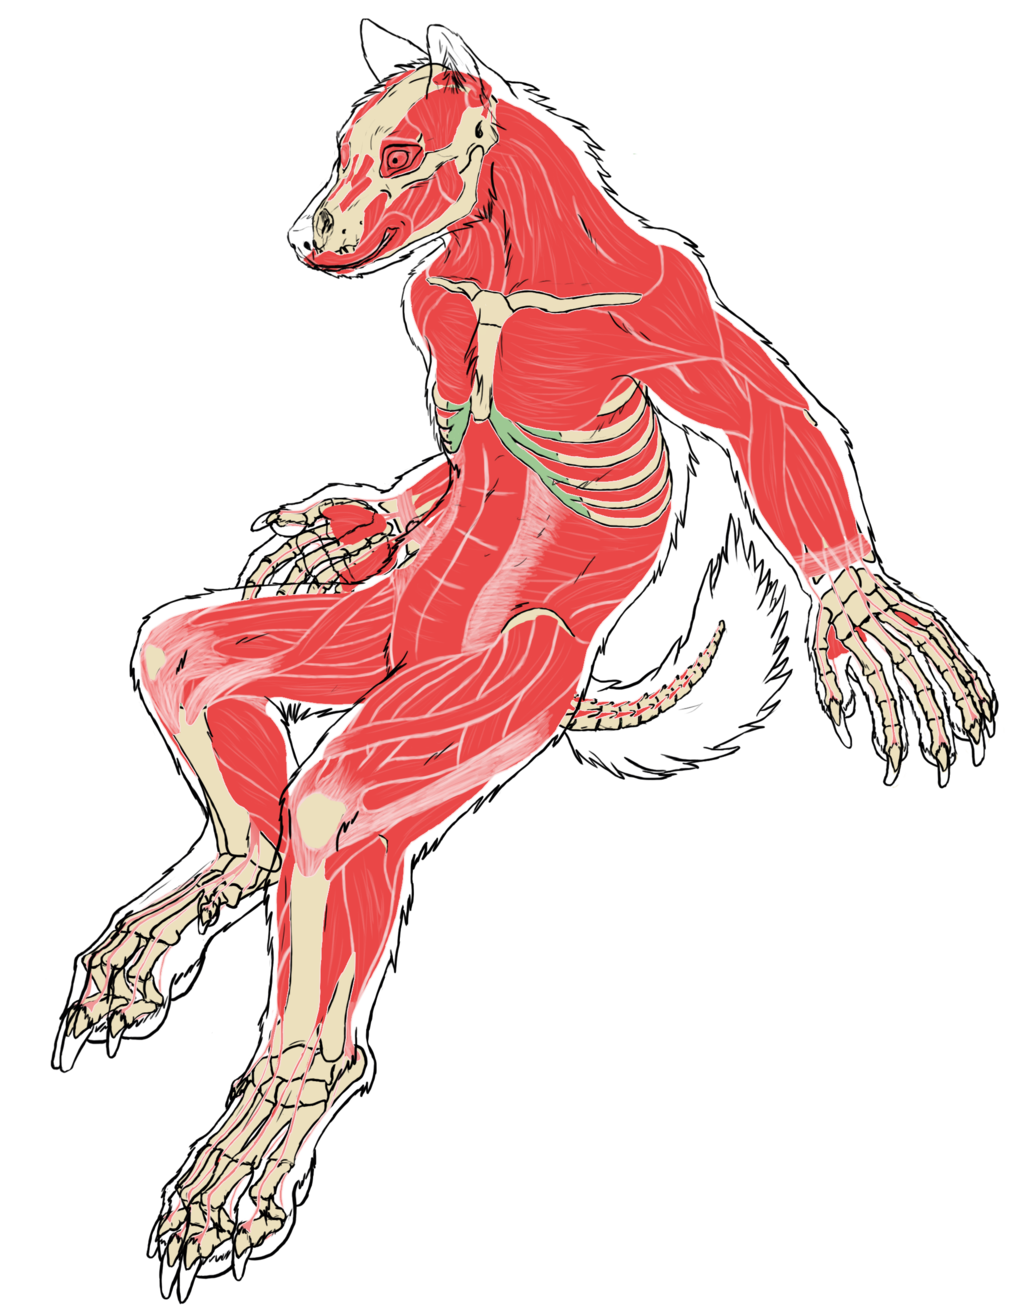 Drawing werewolf muscle. Wolf muscular system pesquisa